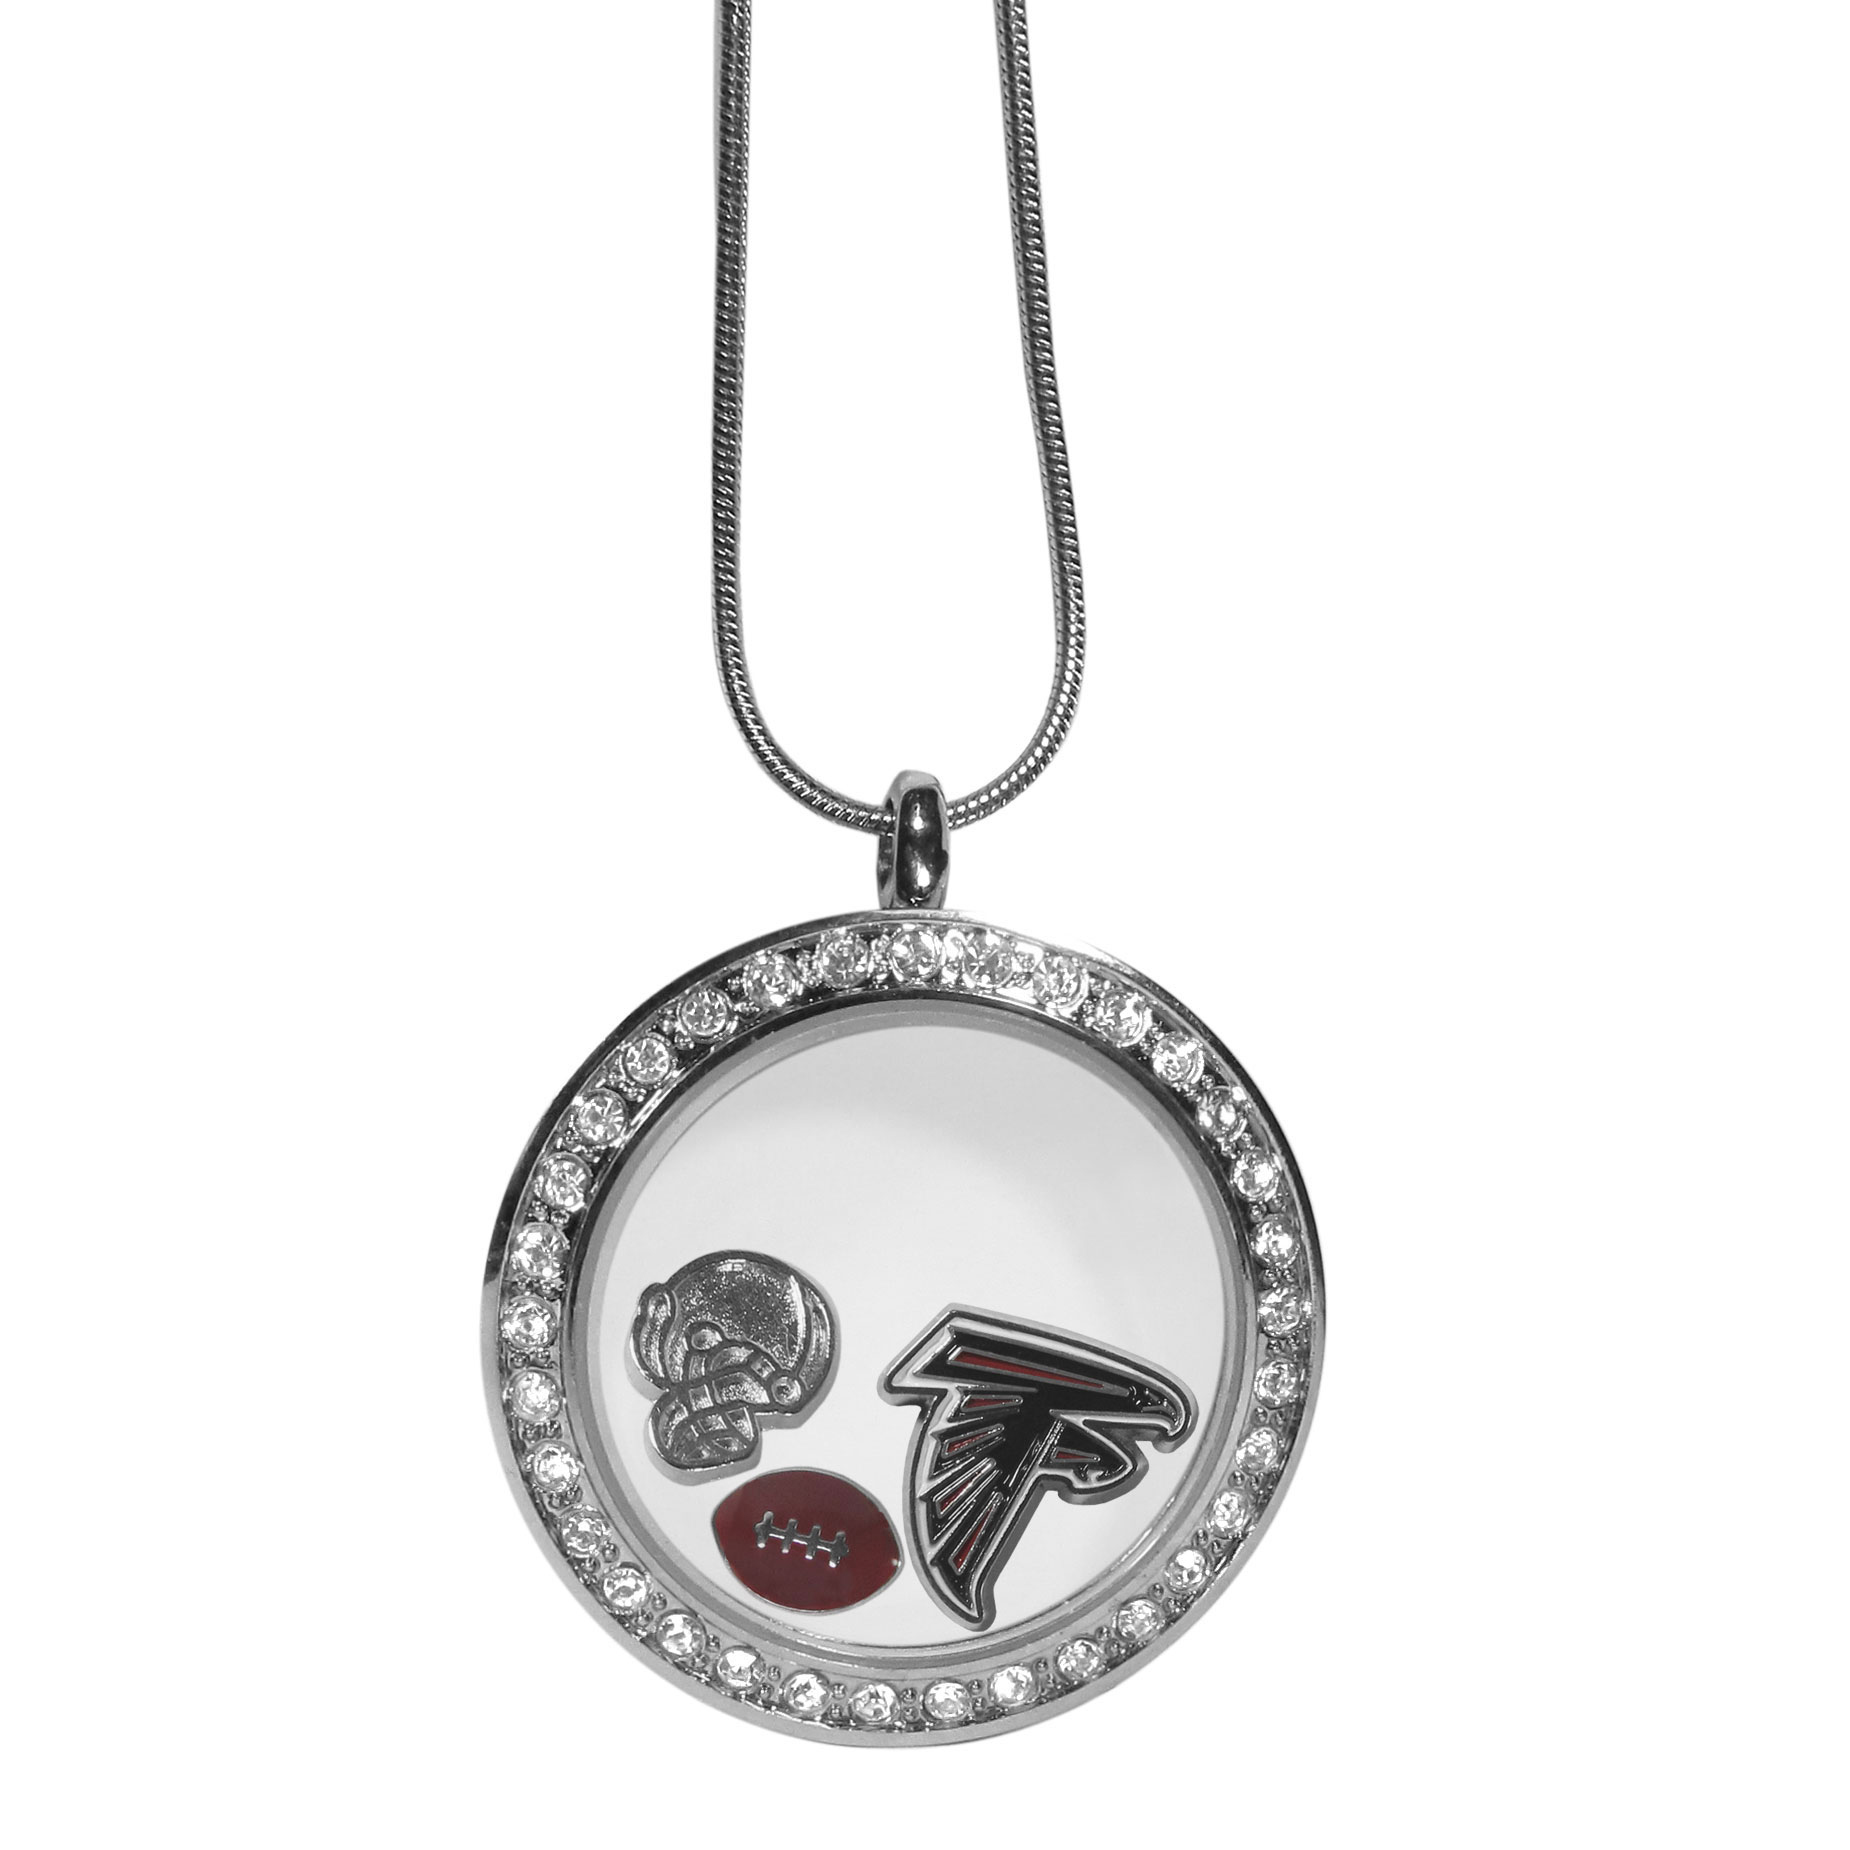 Atlanta Falcons Locket Necklace - We have taken the classic floating charm locket and combined with licensed sports charms to create a must have fan necklace. The necklace comes with 3 charms; 1 Atlanta Falcons charm, one football charm and one helmet charm. The charms float in a beautiful locket that has a strong magnetic closure with a rhinestone border. The locket comes on an 18 inch snake chain with 2 inch extender.